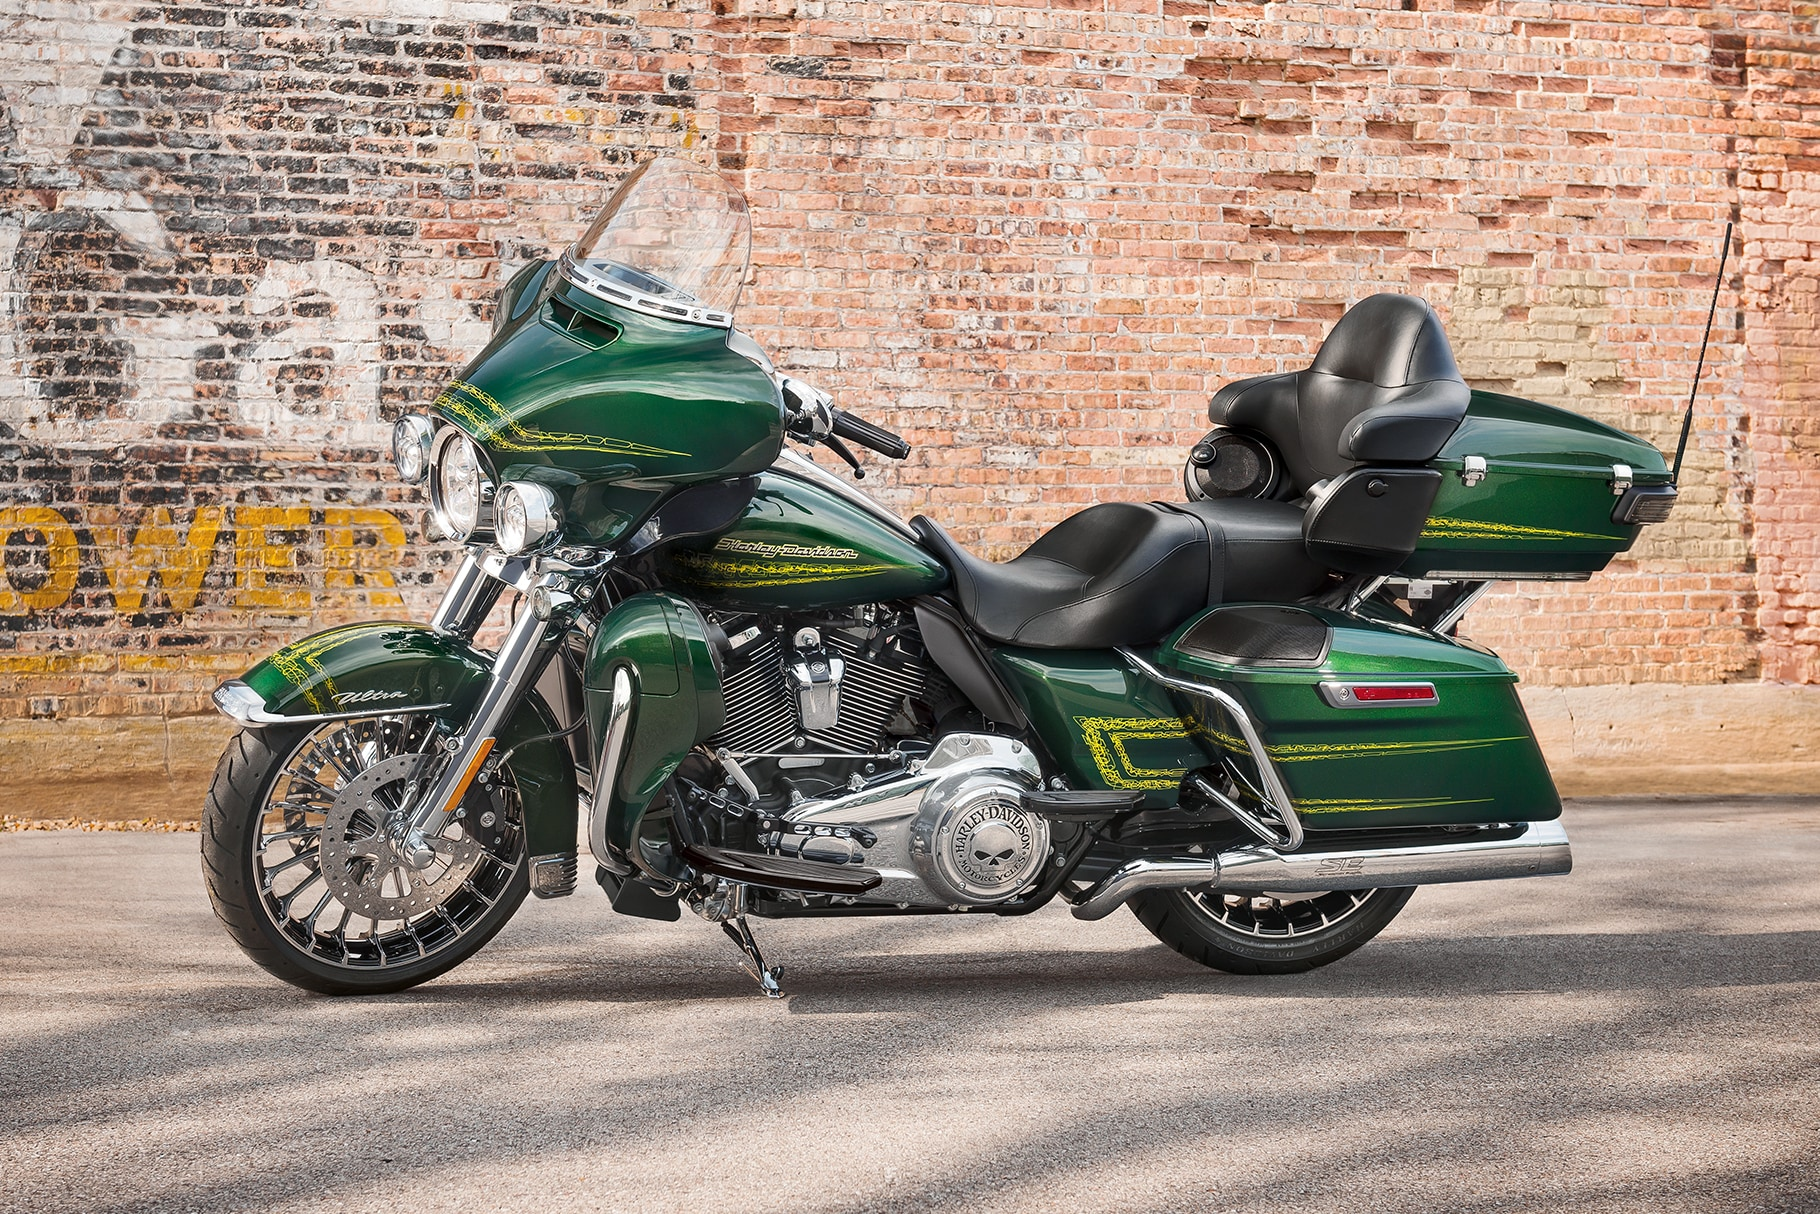 H-D 2019 Electra Glide ULtra Classic Motorcycle